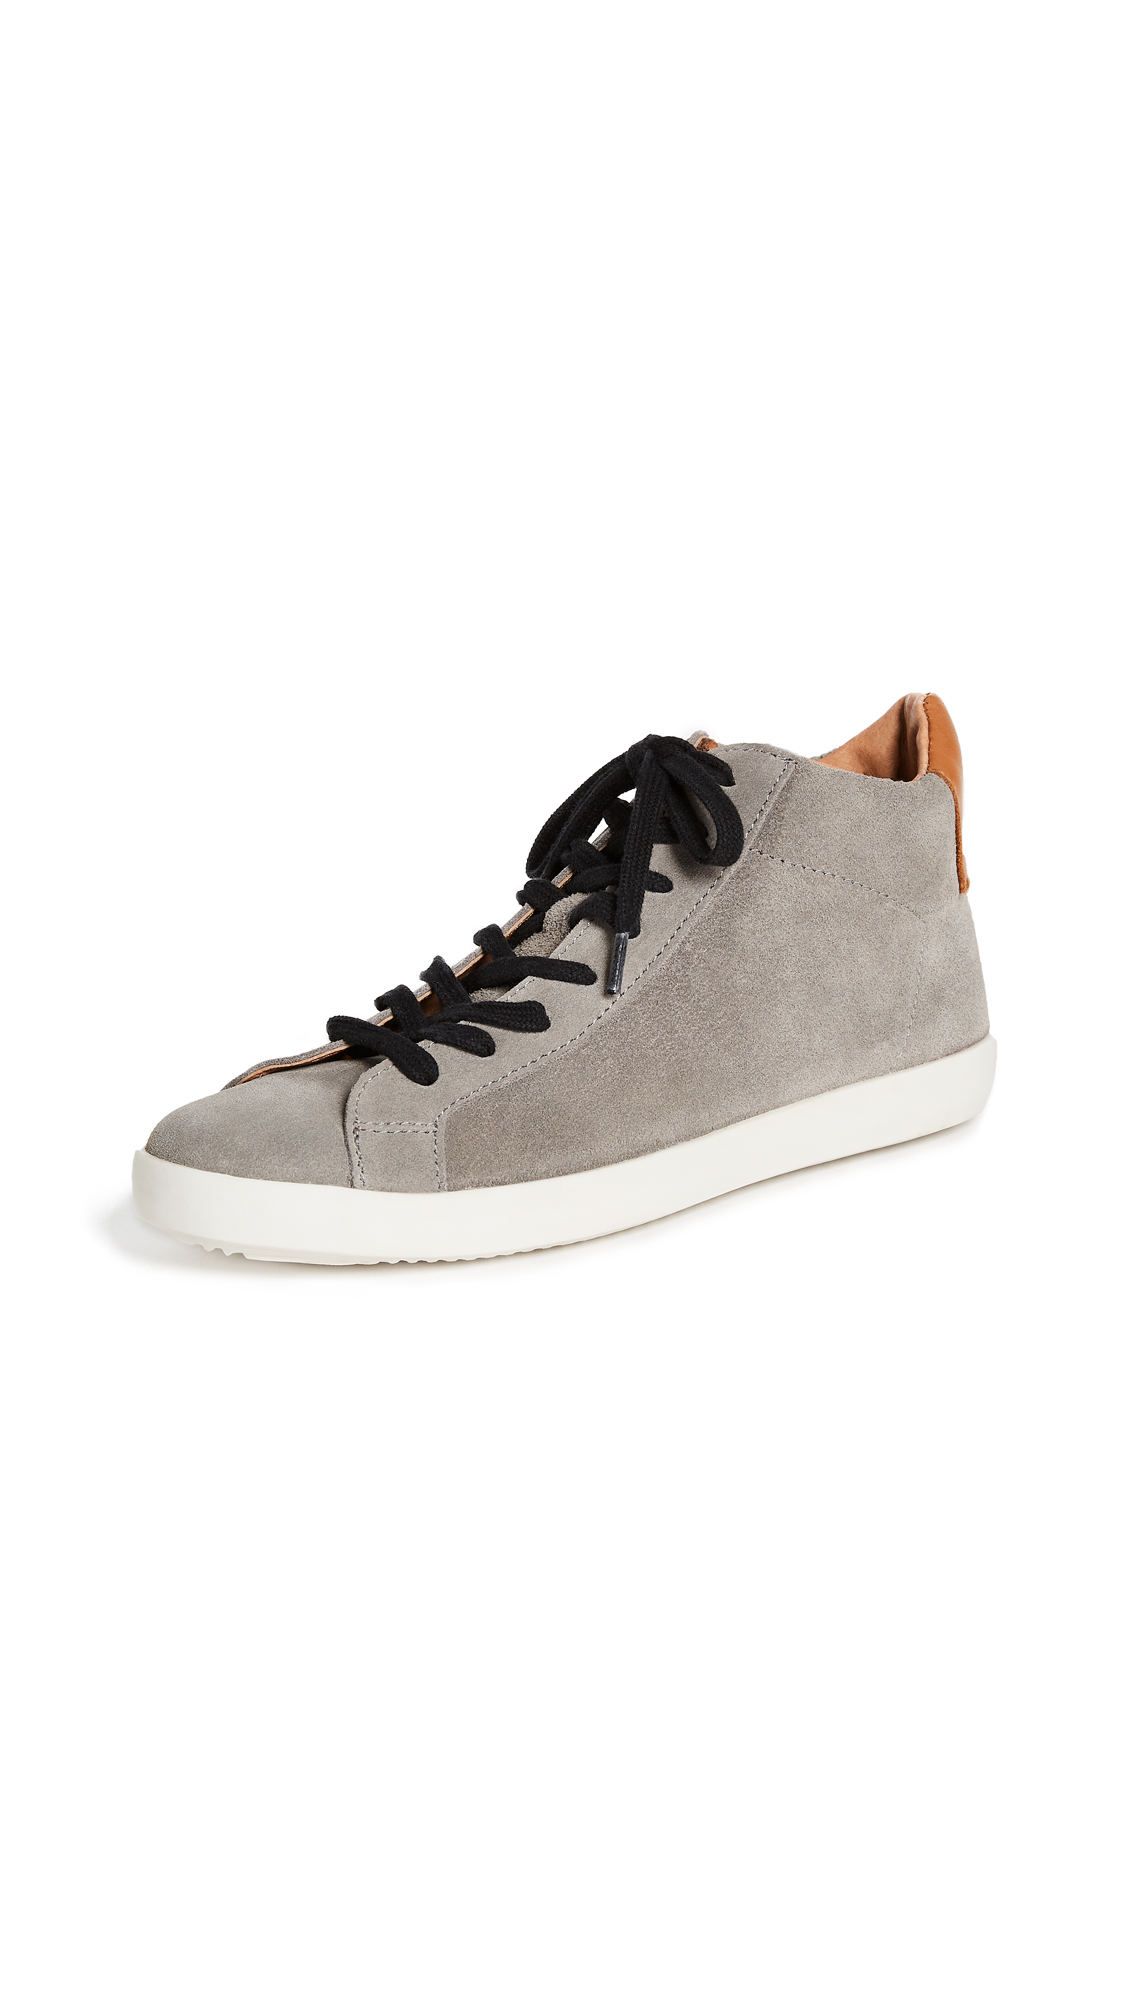 Matt Bernson Zeus High Top Sneakers - Slate